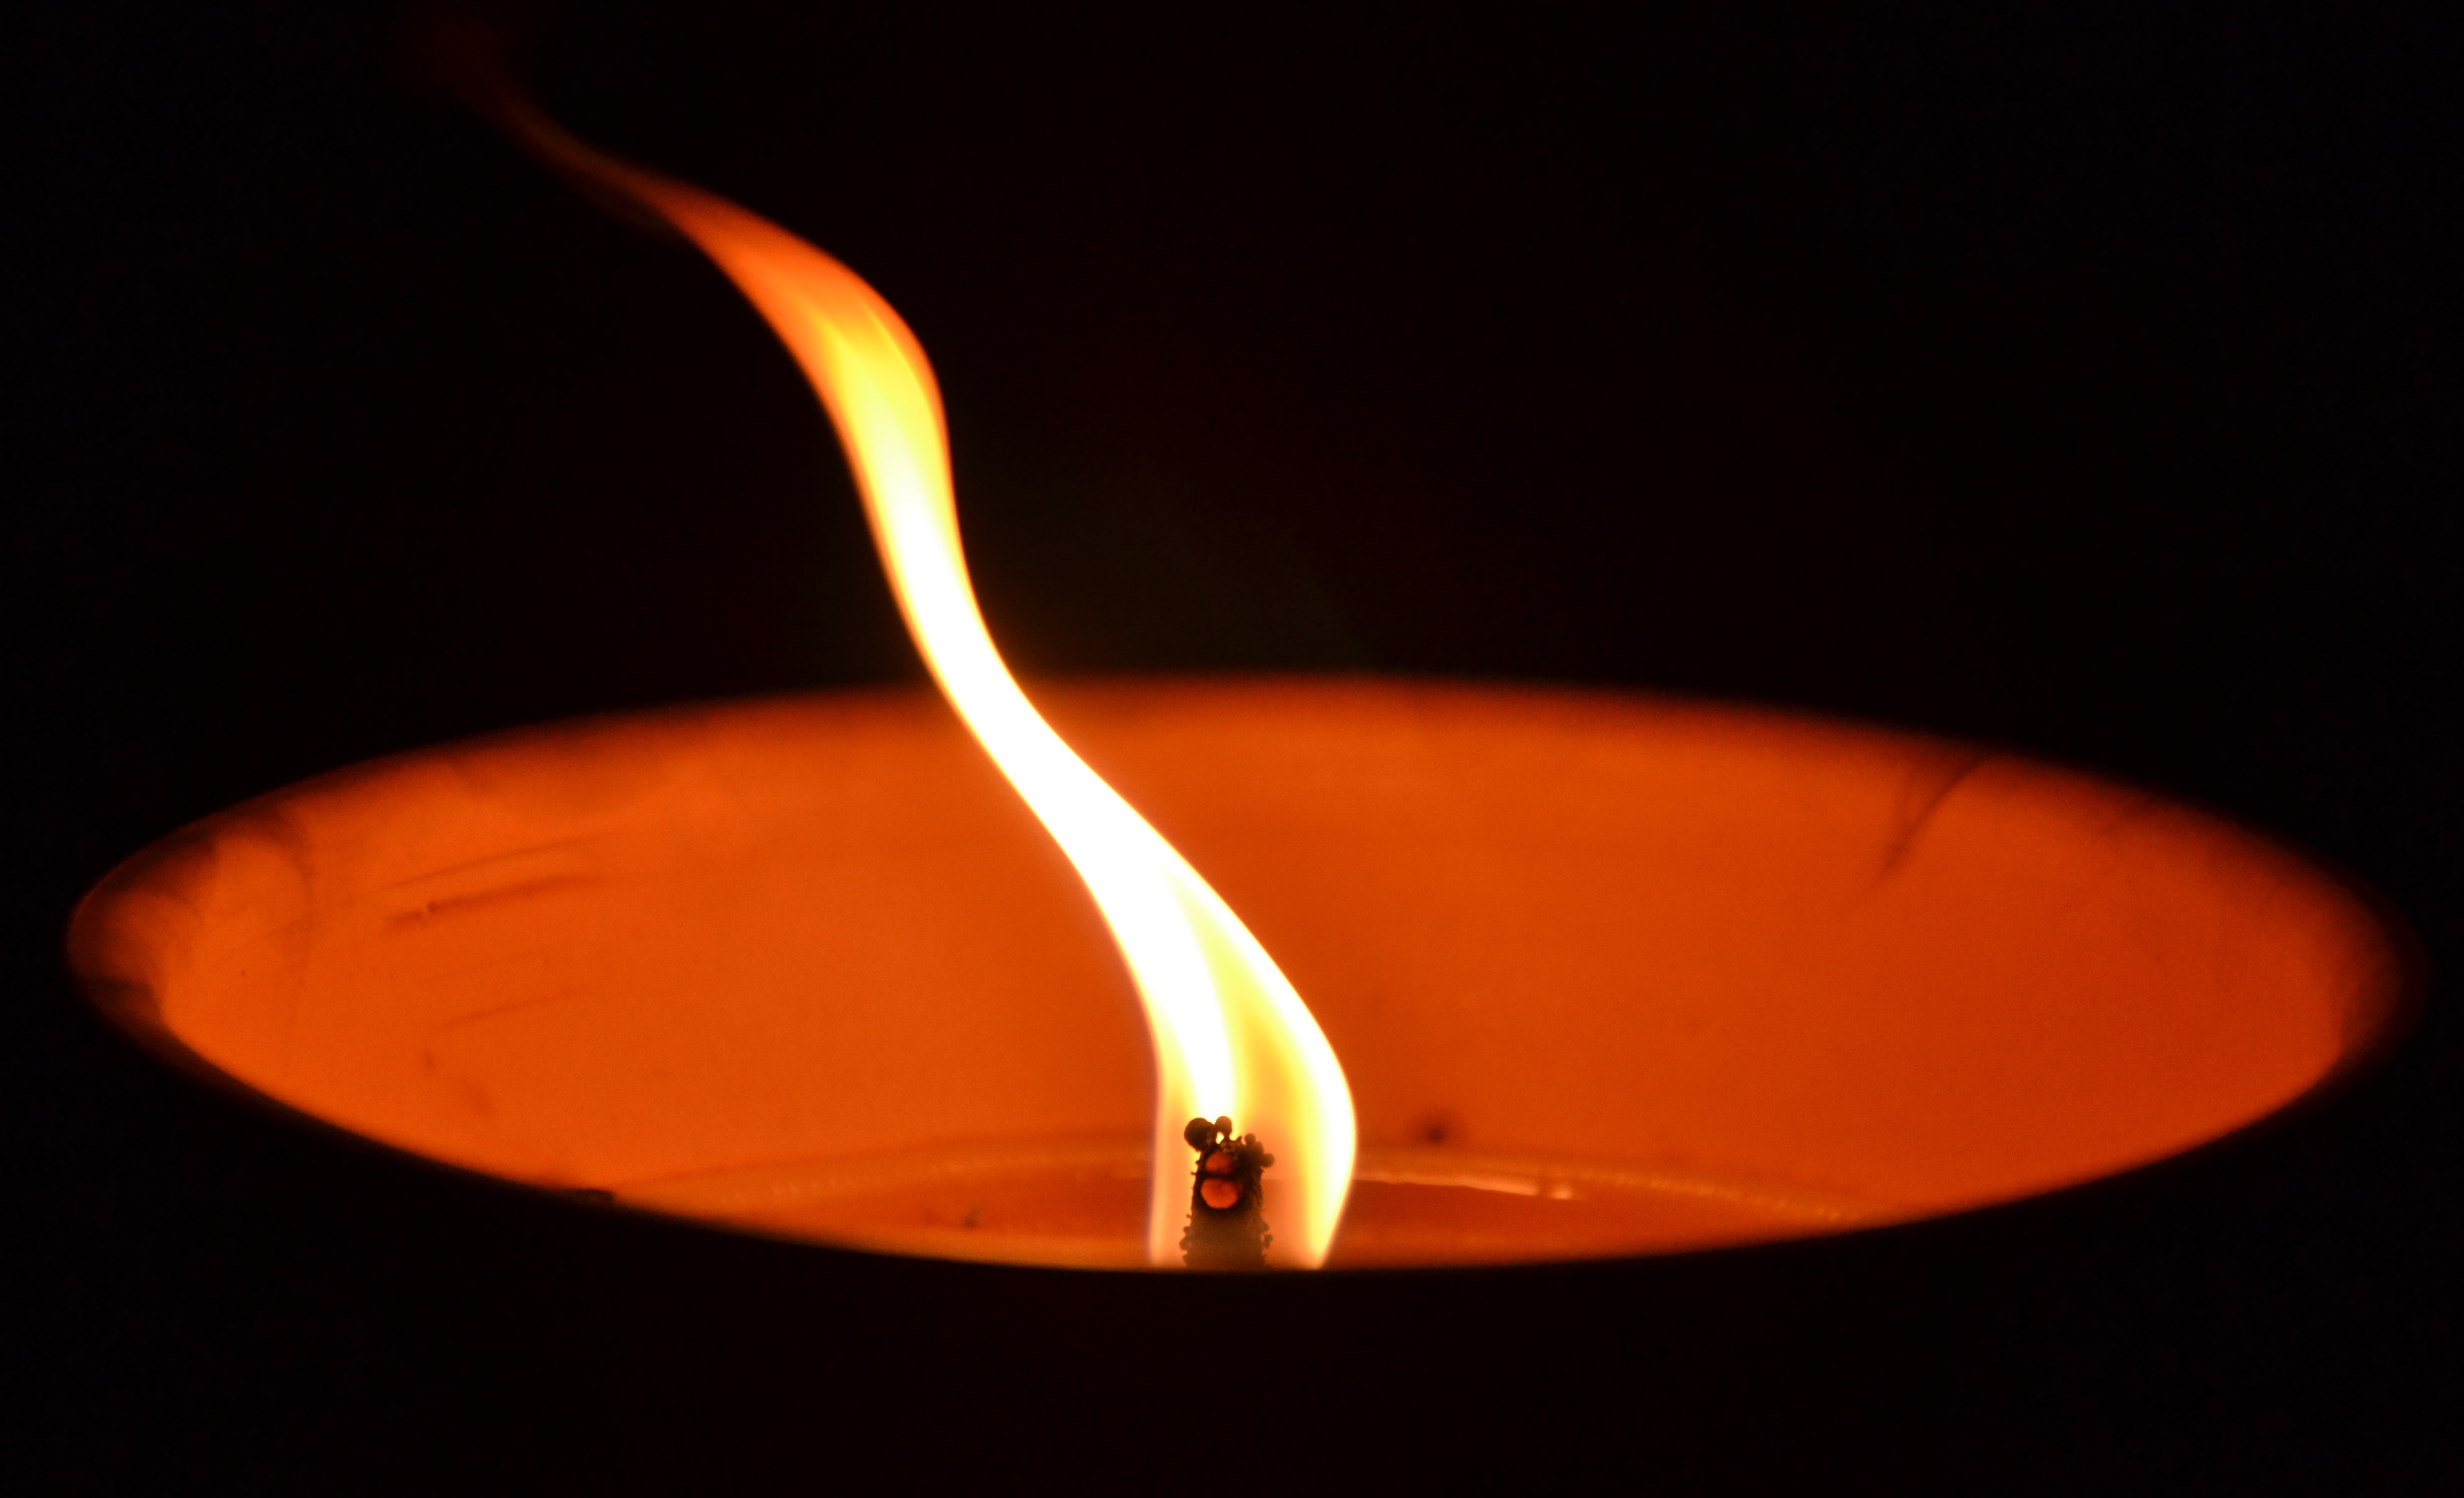 Every moment is like a candle in the wind. I just made that up trying to sound deep.